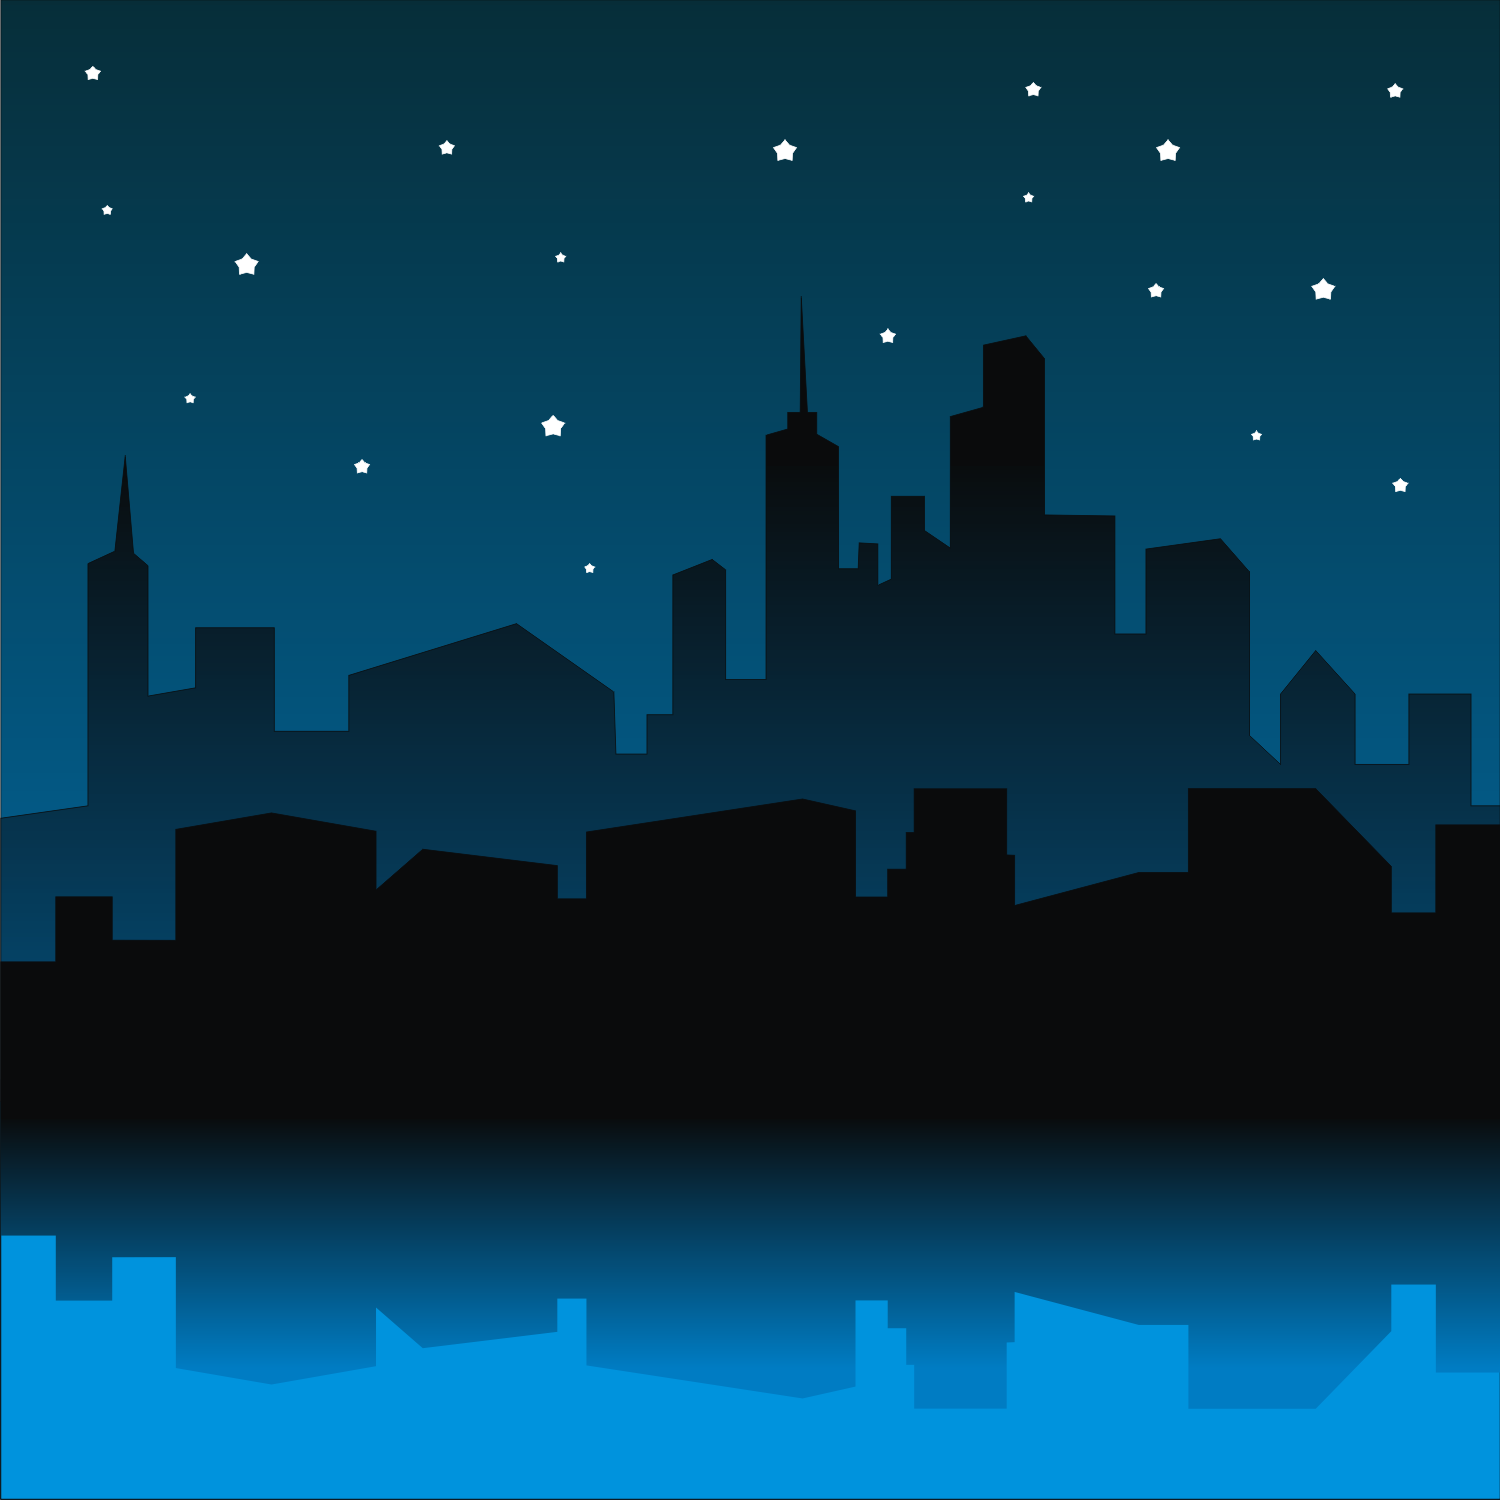 Vector for free use: City night